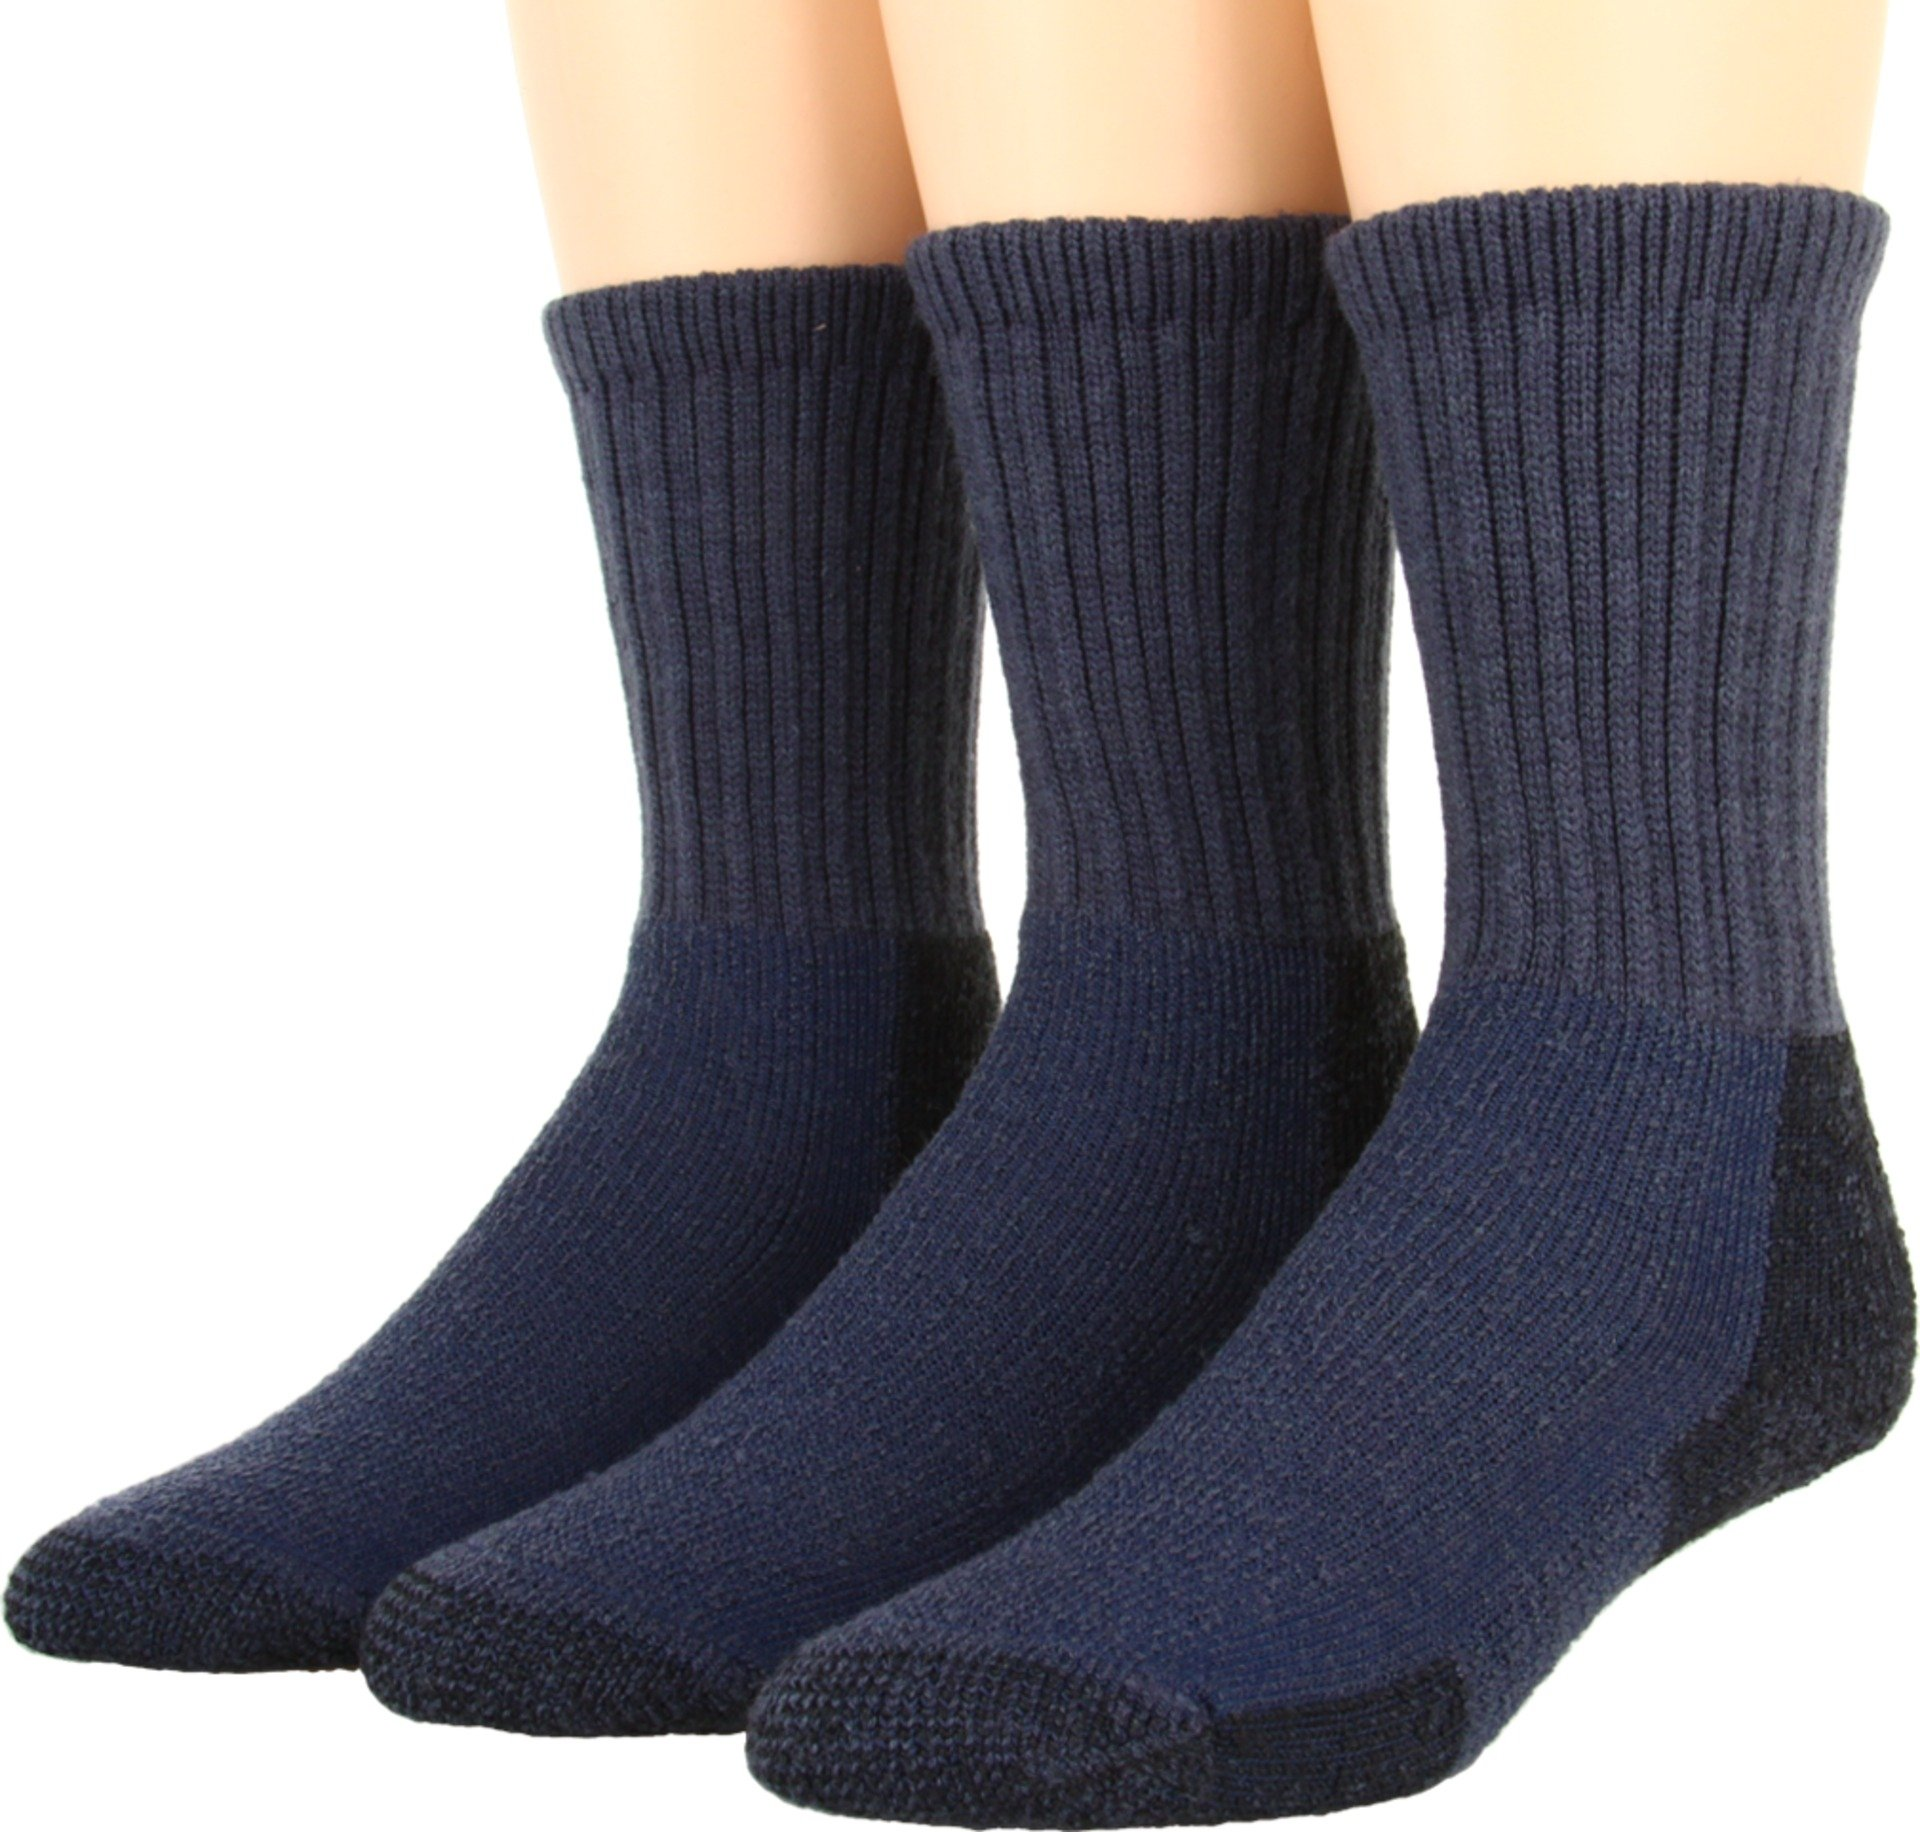 Thorlos Unisex Thick Cushion Hiking Wool Blend 3-Pack Dark Blue Large by thorlos